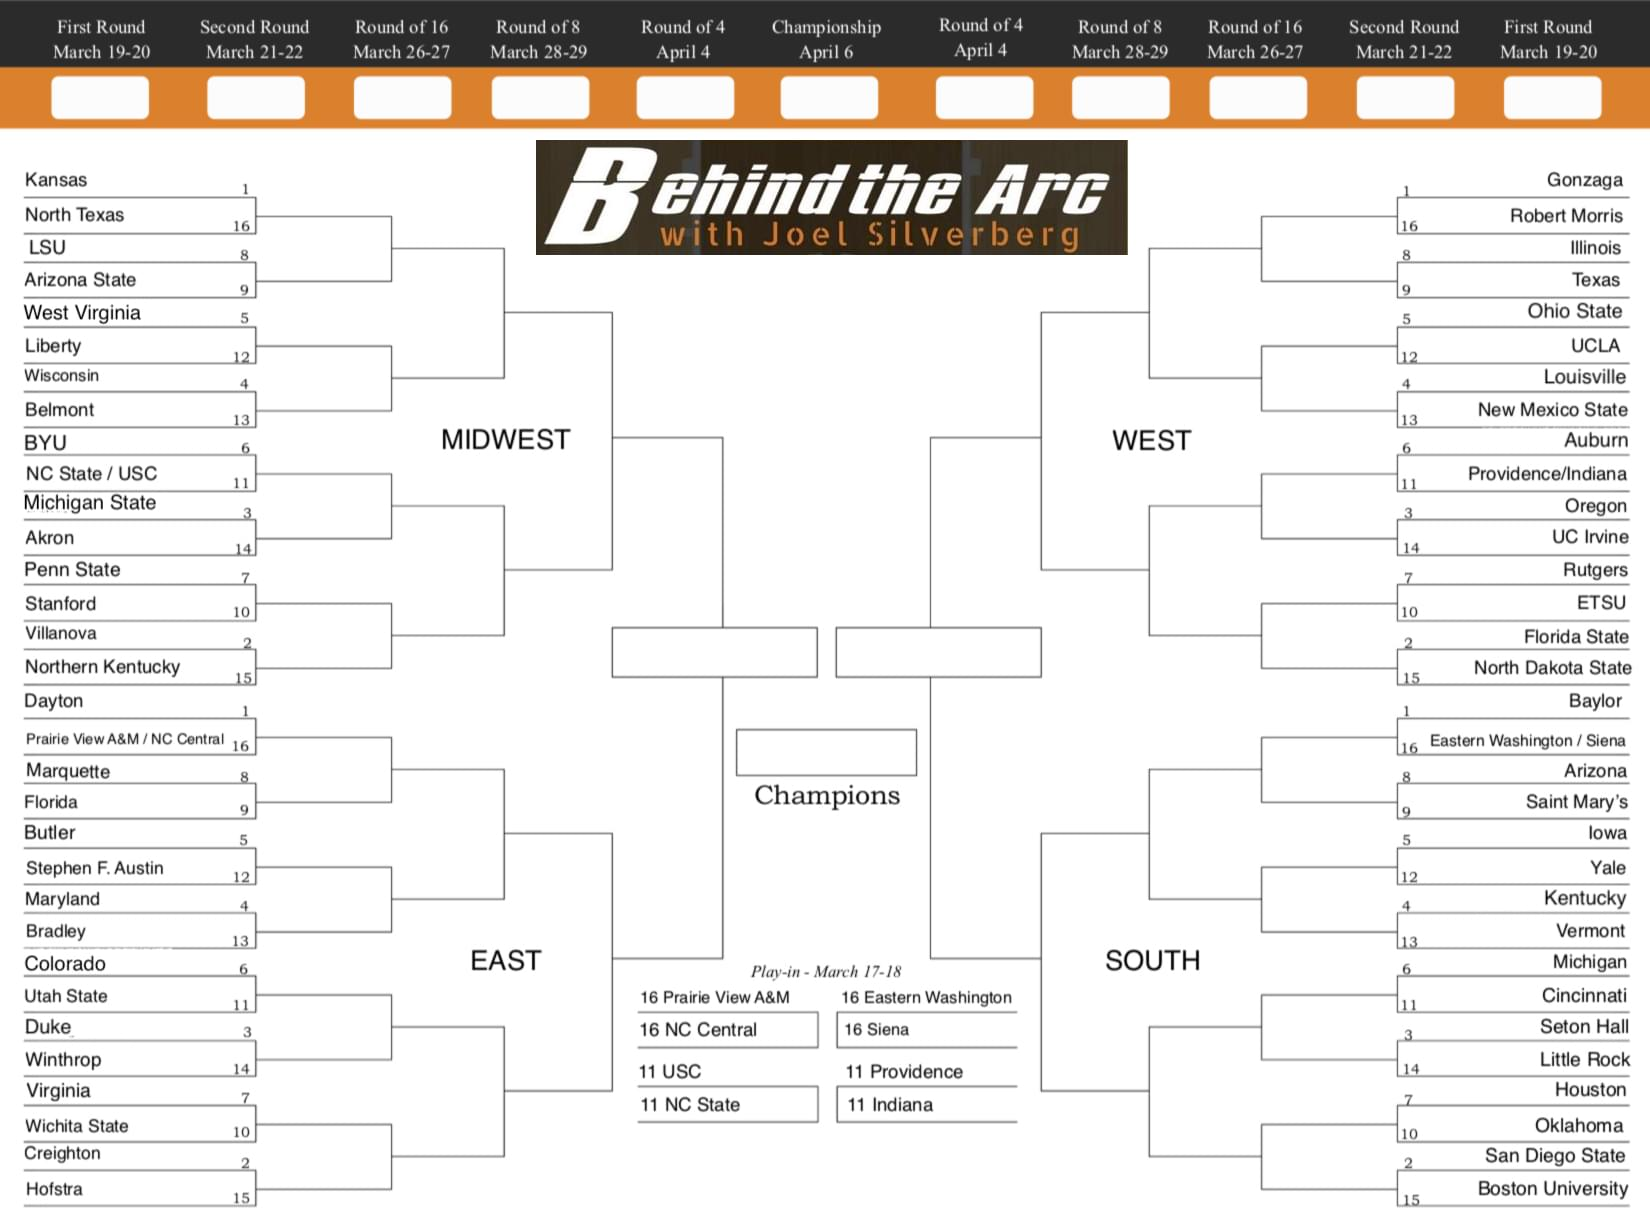 Silverberg: Final pick for the 2020 NCAA Tournament bracket